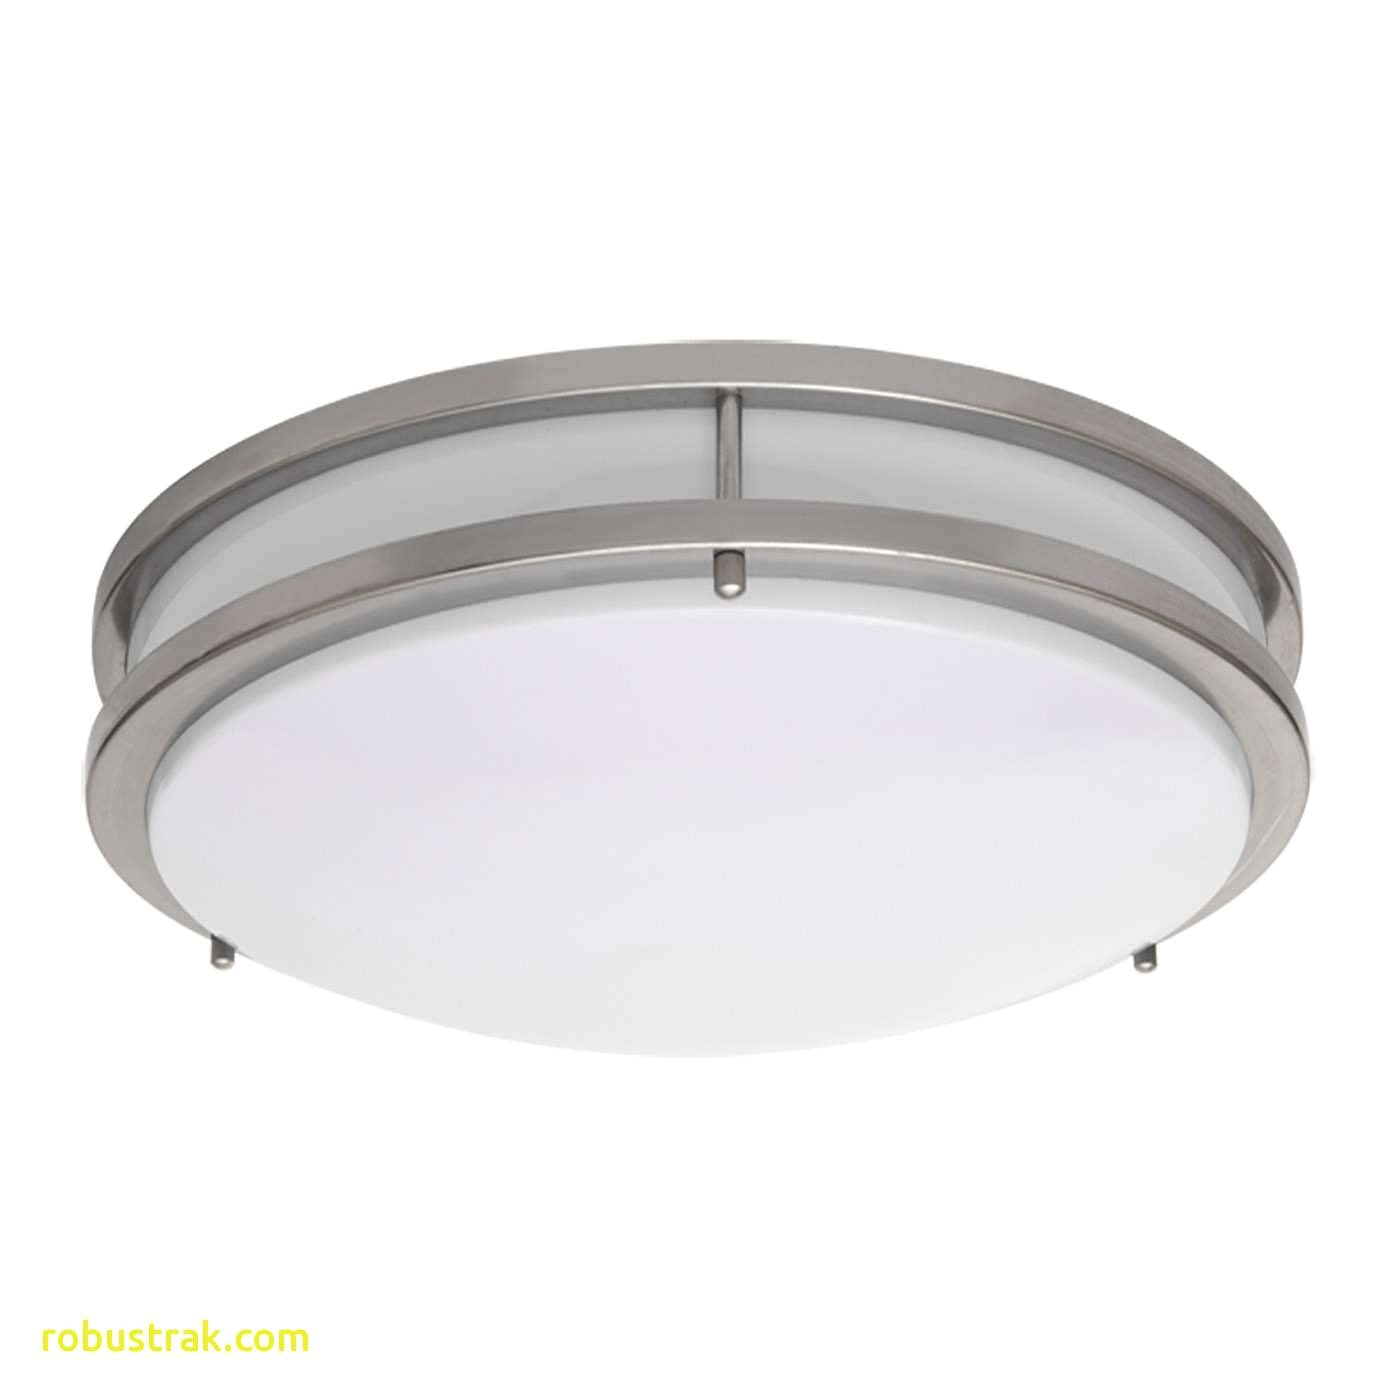 8ft Led Light Fixture Aˆš Fresh Led Ceiling Light Fixture Realbienes